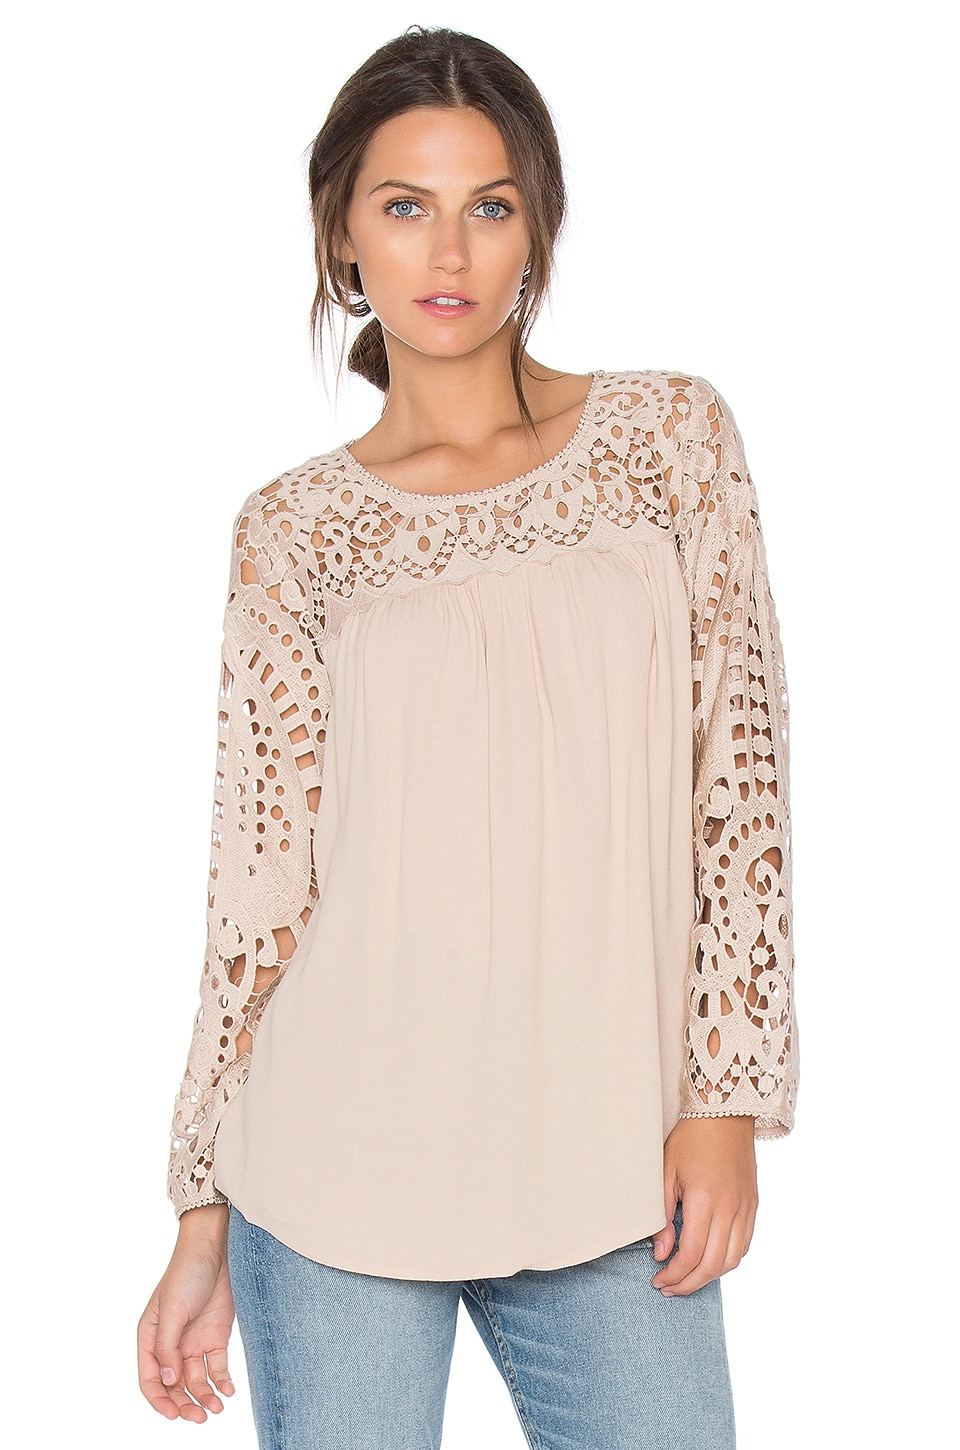 Joie Lindy Lace Blouse in Almond